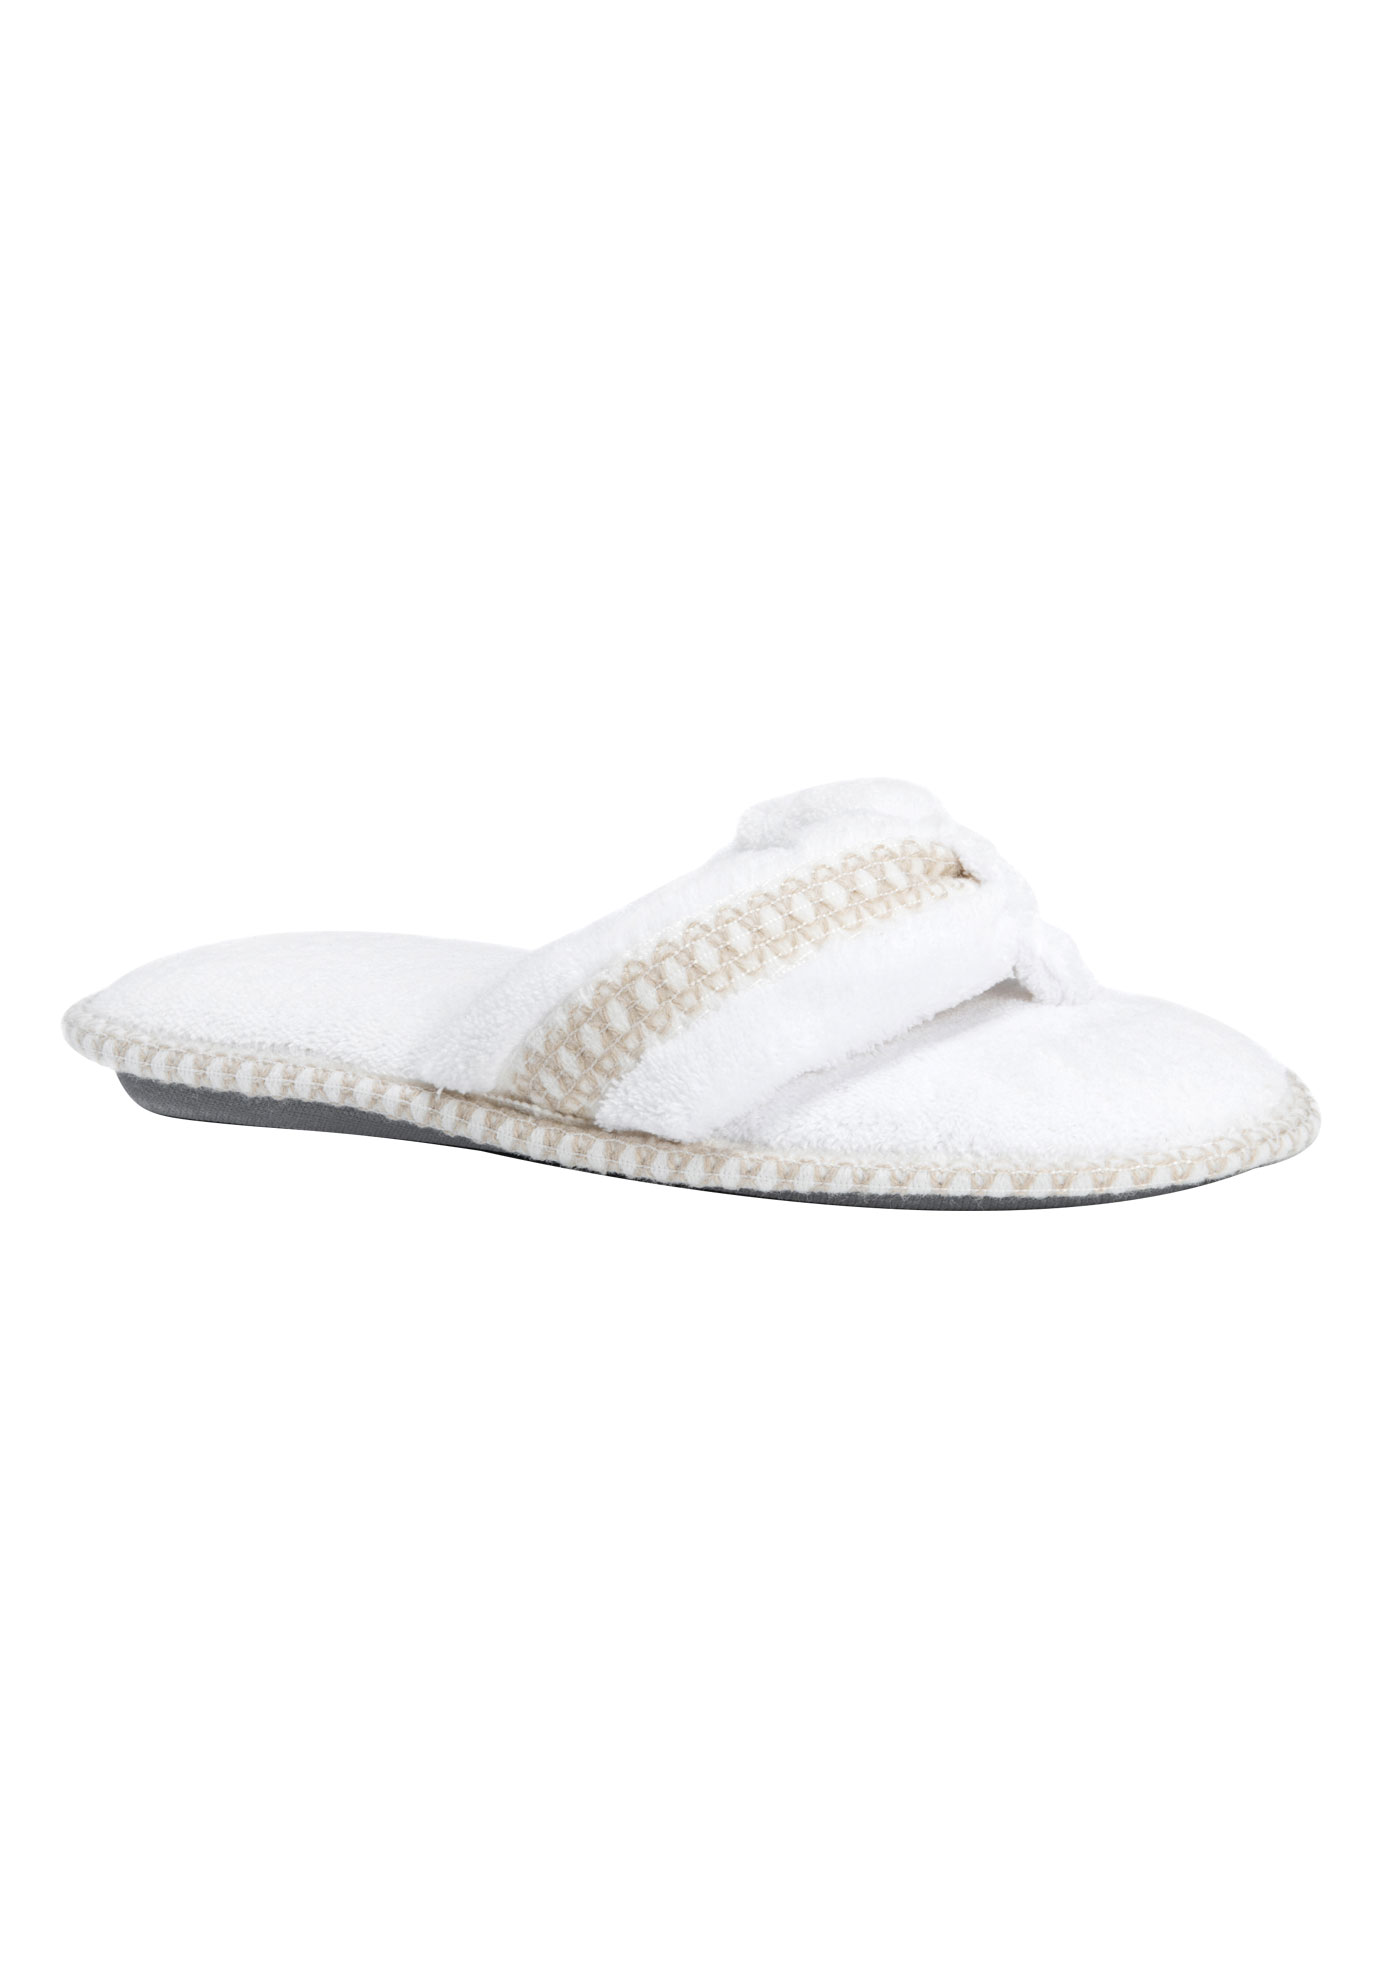 Darlene Thong Slippers by Muk Luks®, LILY WHITE, hi-res